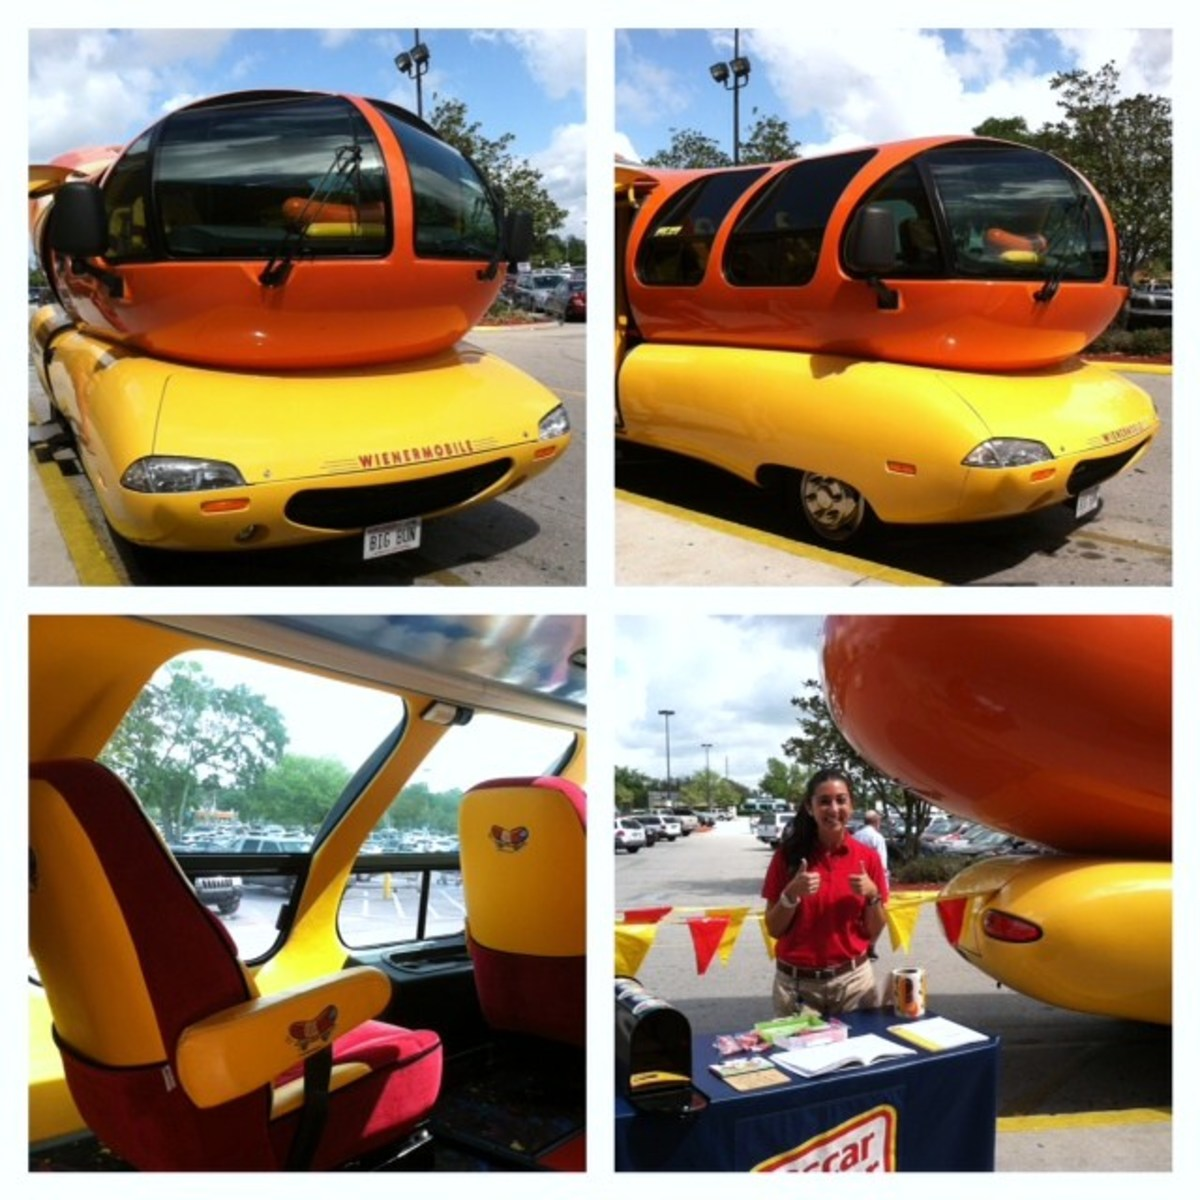 History of the Oscar Mayer Wienermobile